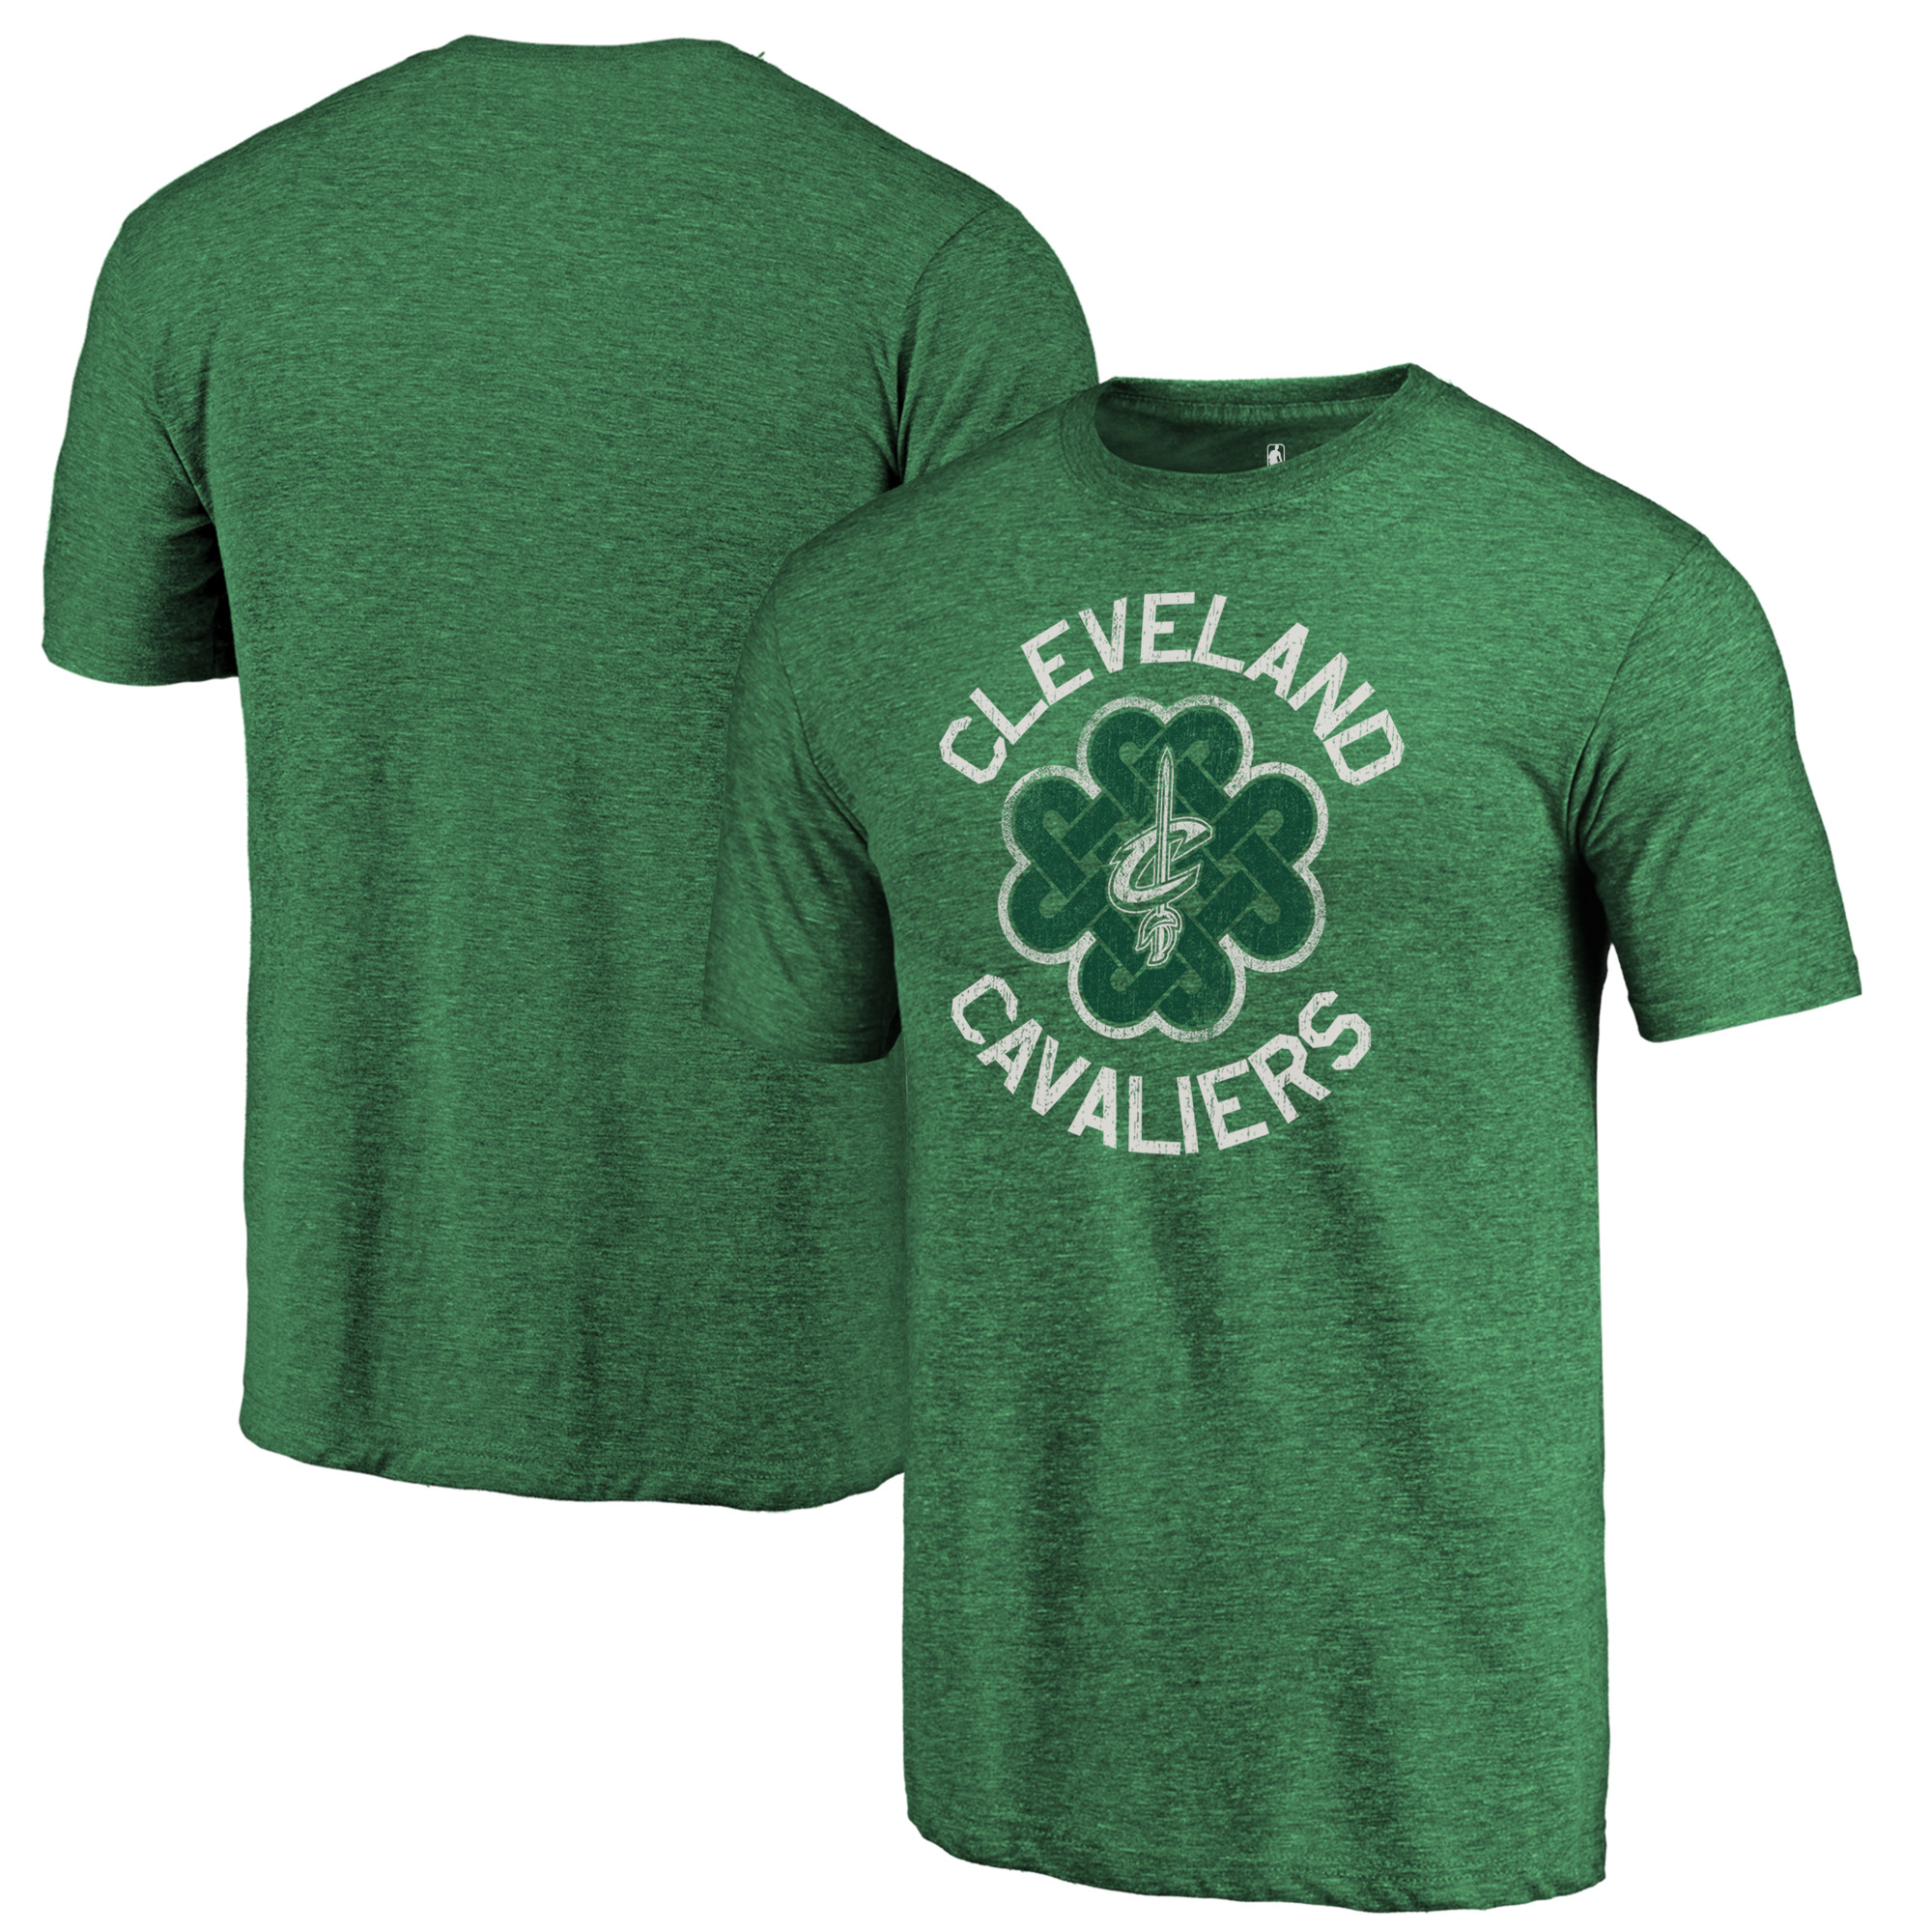 Cleveland Cavaliers Fanatics Branded St. Patrick's Day Luck Tradition Tri-Blend T-Shirt - Green